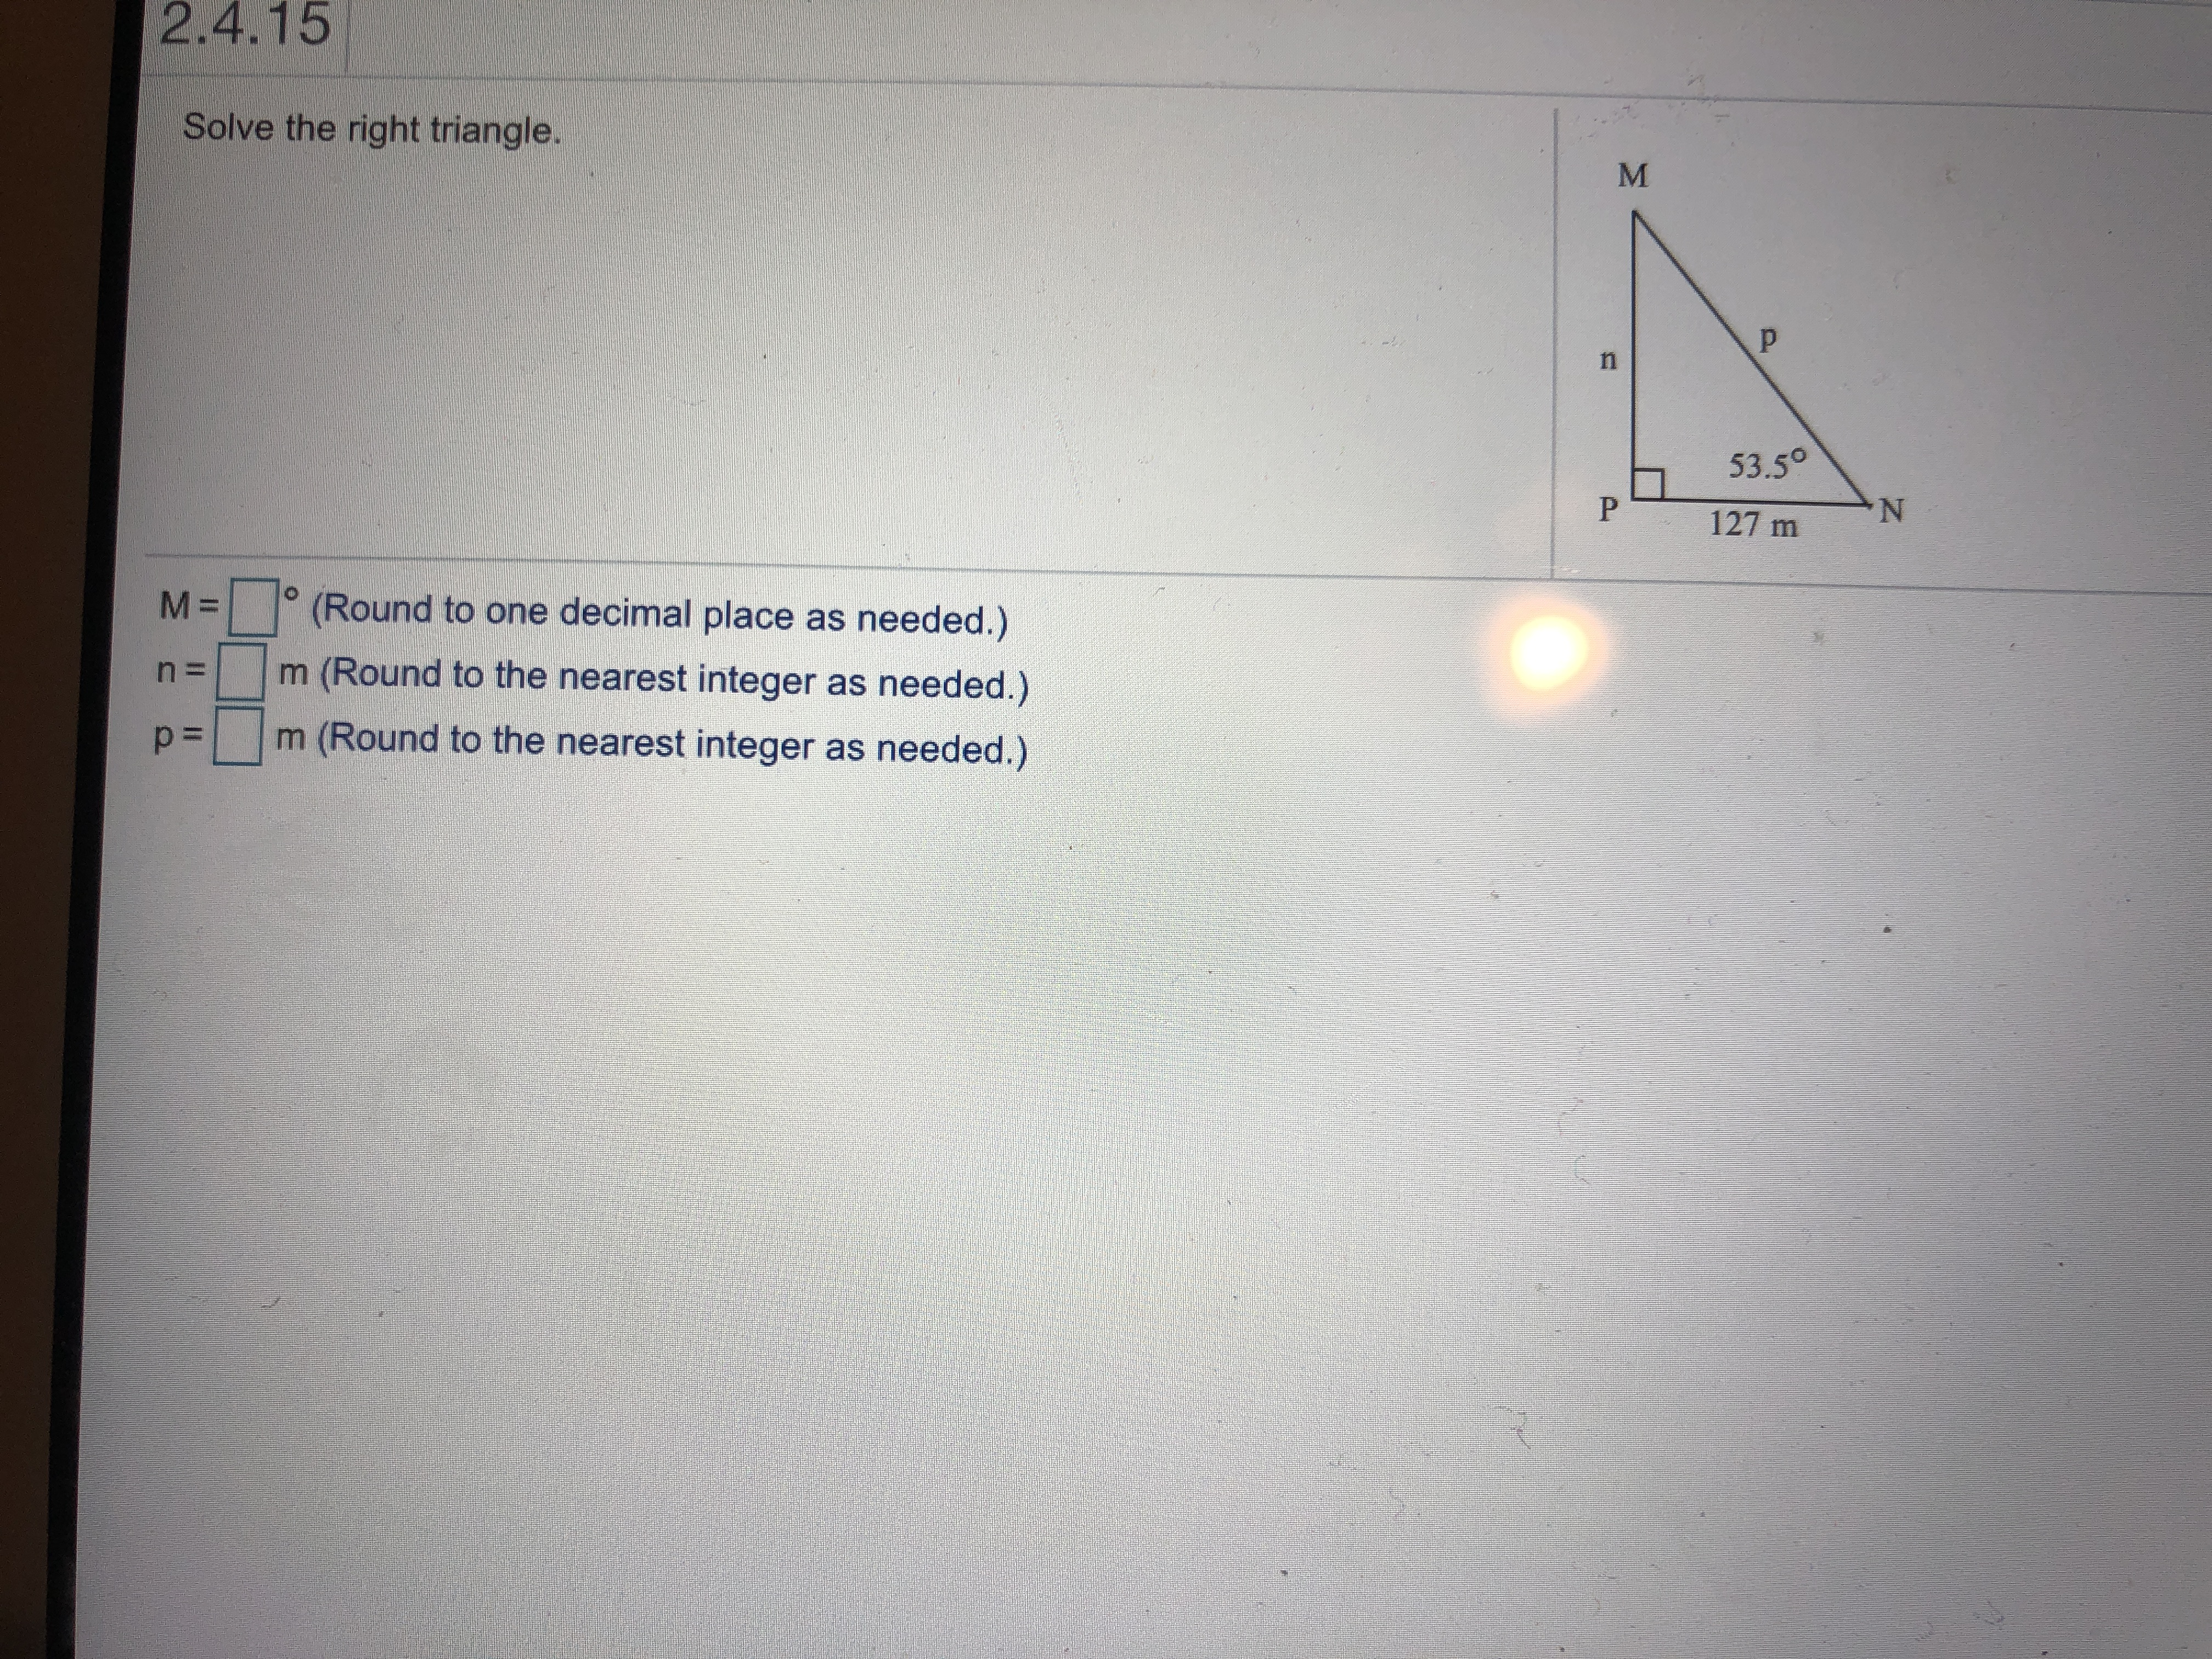 II 2.4.15 Solve the right triangle. p n 53.50 P 127 m M= (Round to one decimal place as needed.) m (Round to the nearest integer as needed.) m (Round to the nearest integer as needed.)